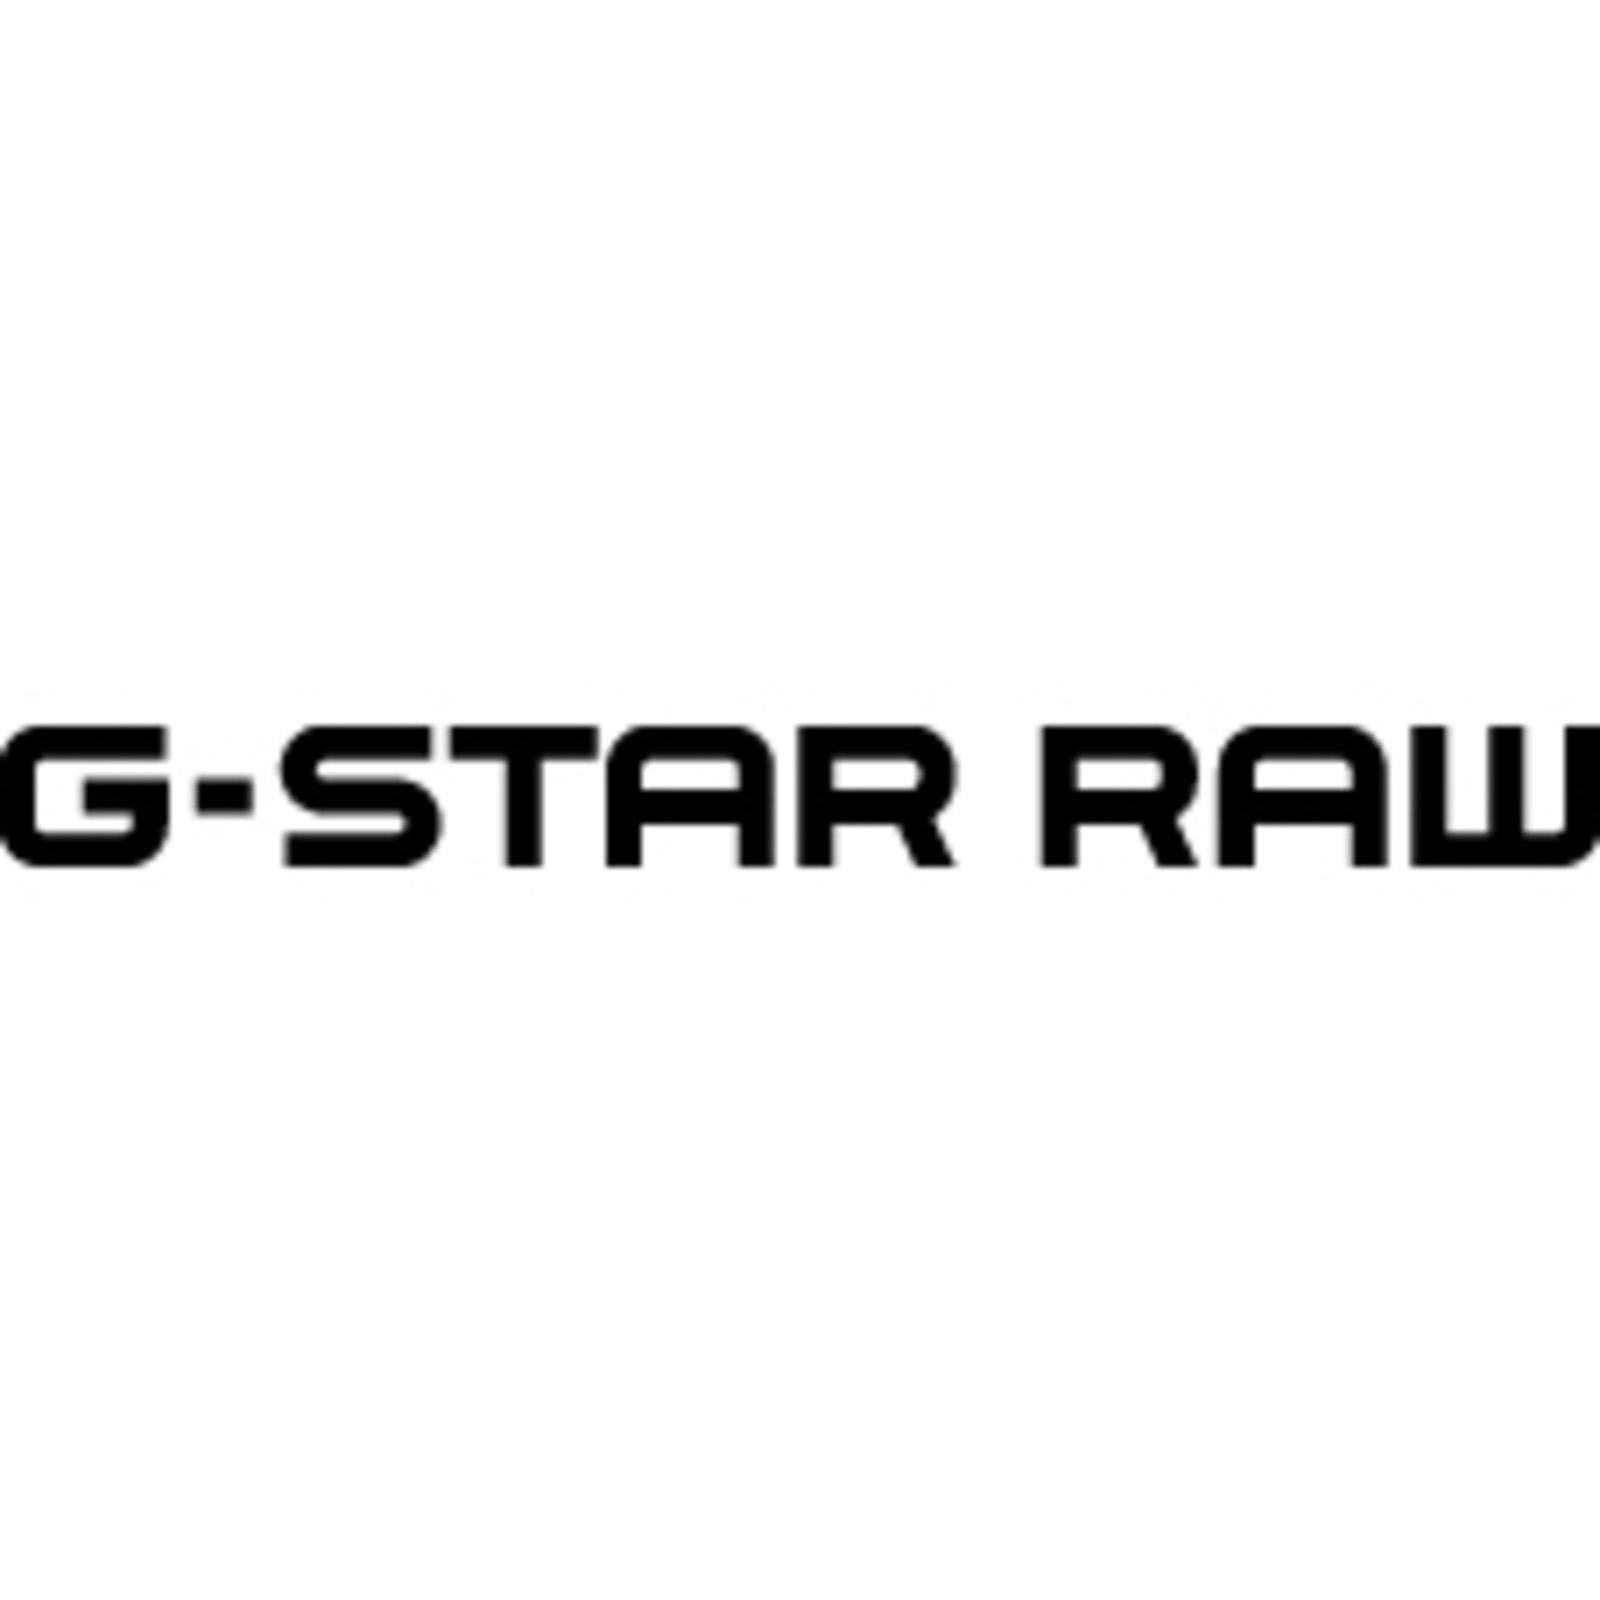 G-STAR RAW FOOTWEAR (Bild 1)